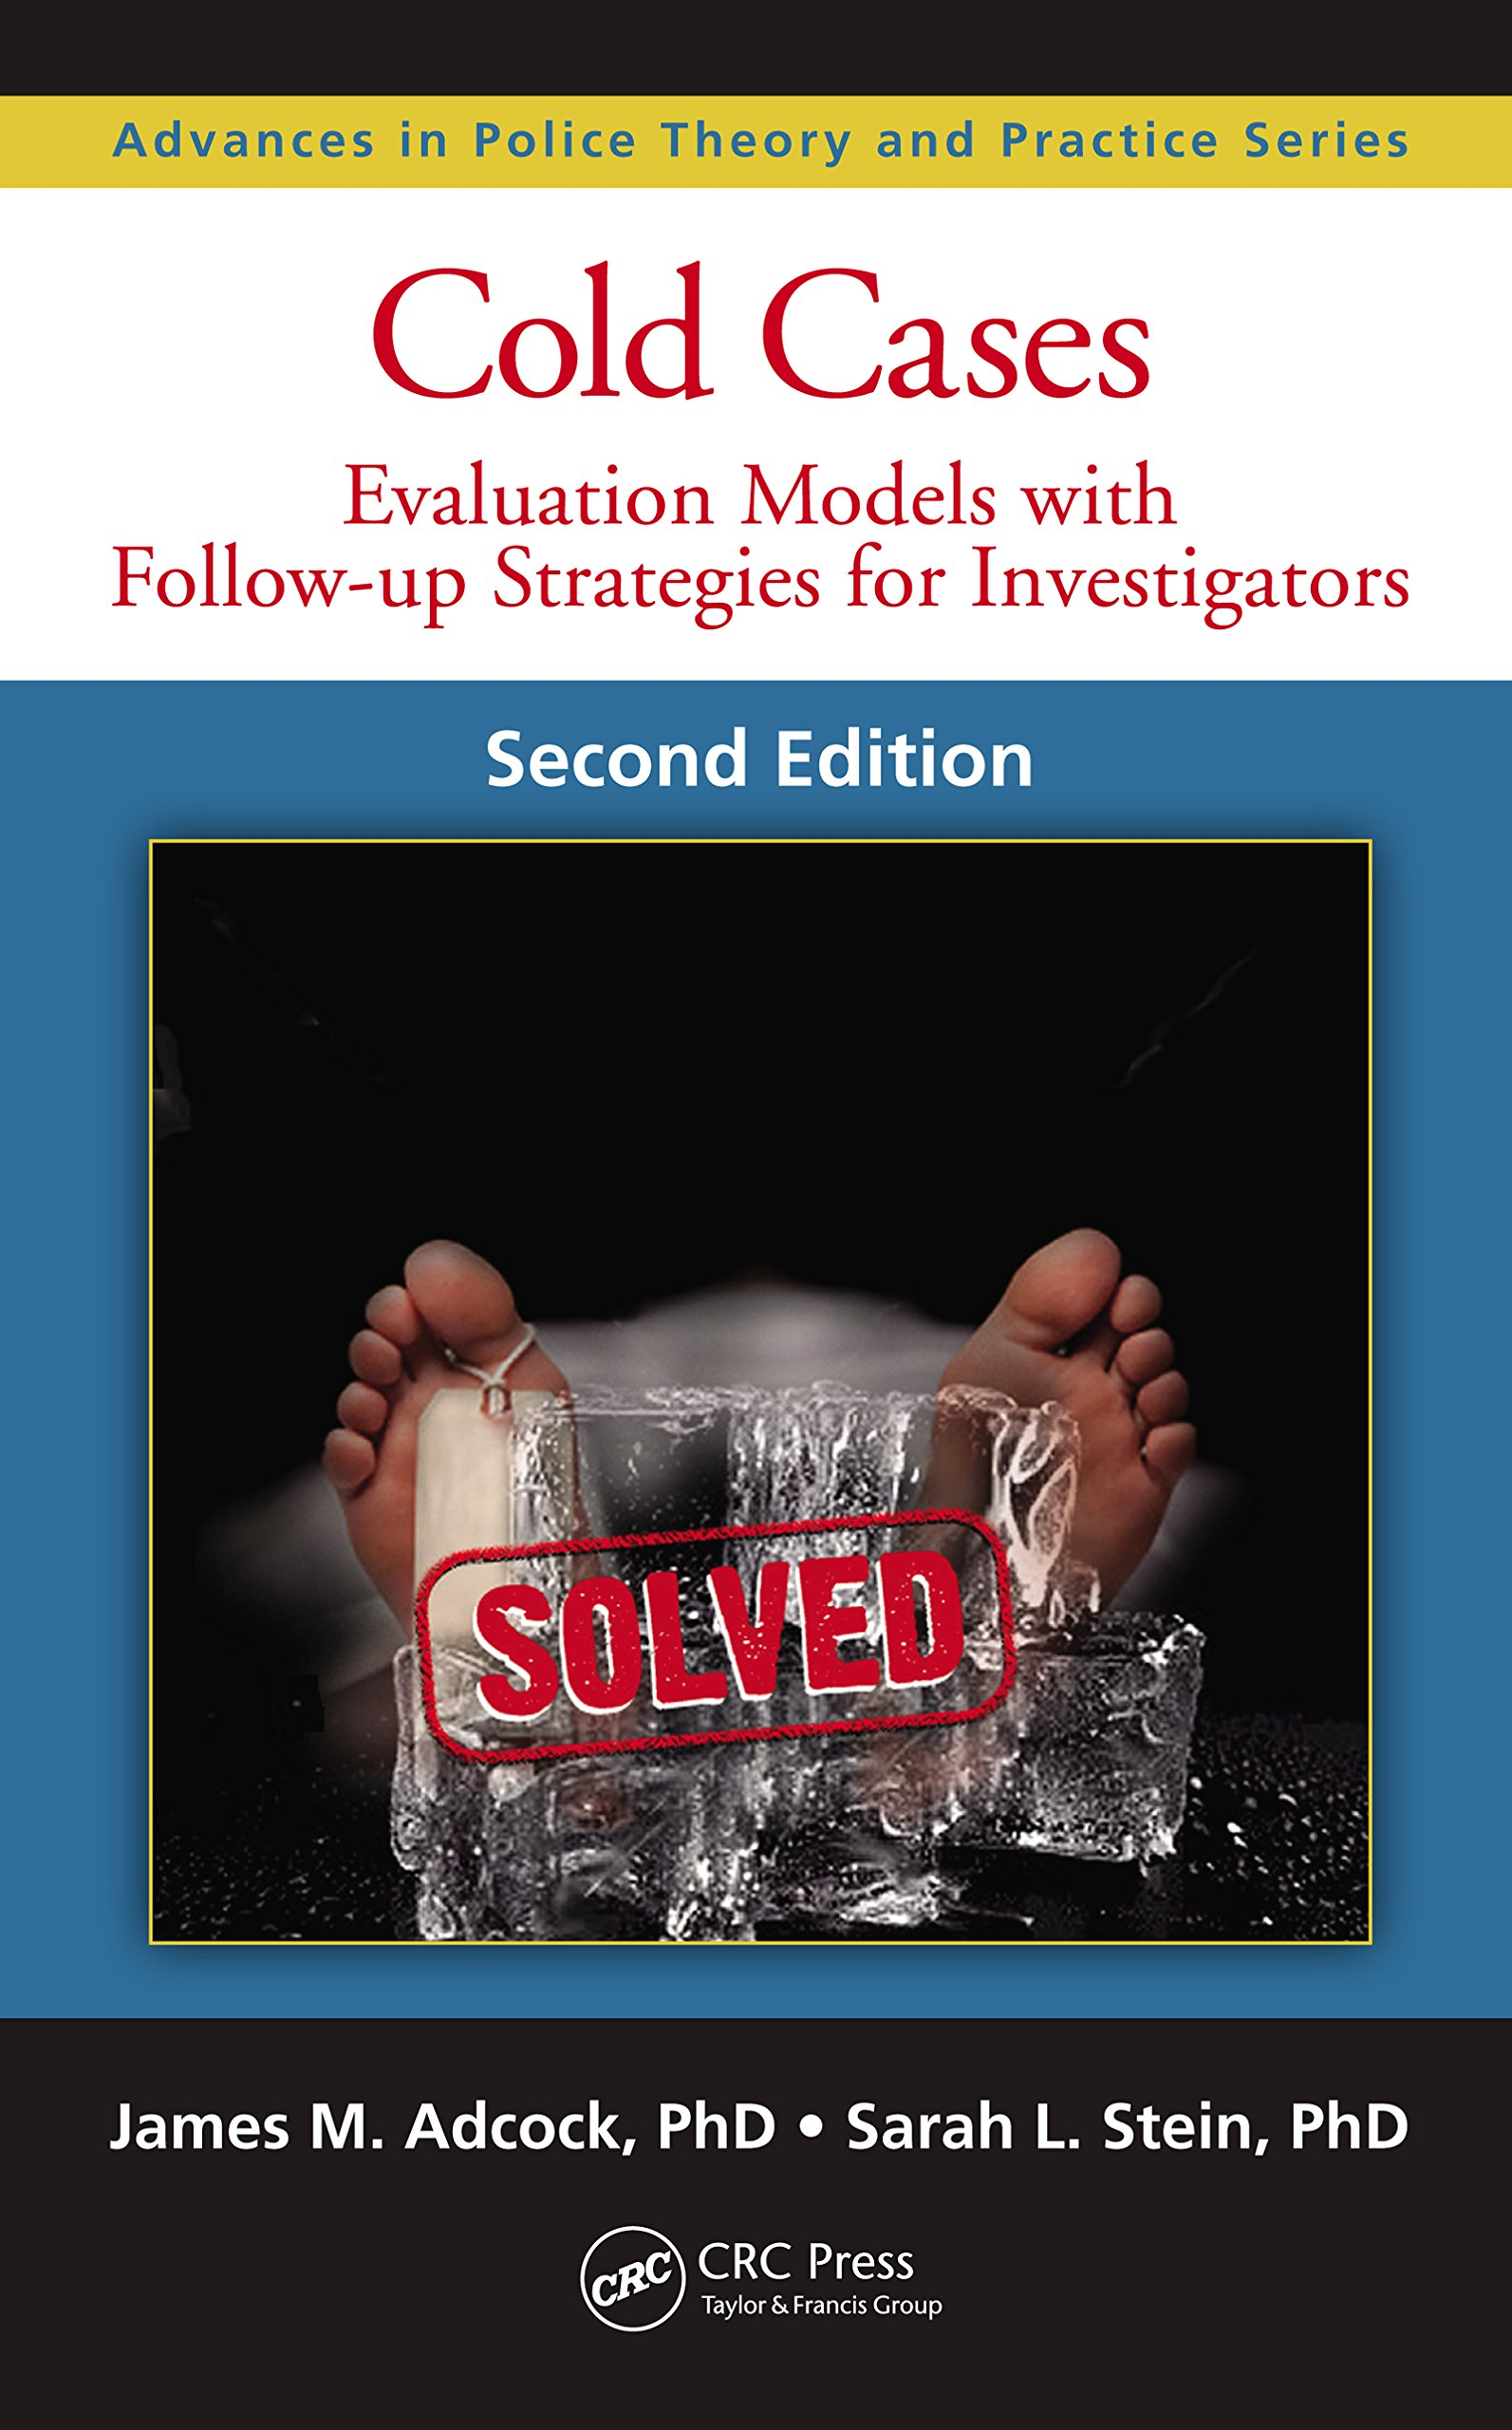 Cold Cases  Evaluation Models With Follow Up Strategies For Investigators Second Edition  Advances In Police Theory And Practice Book 23   English Edition